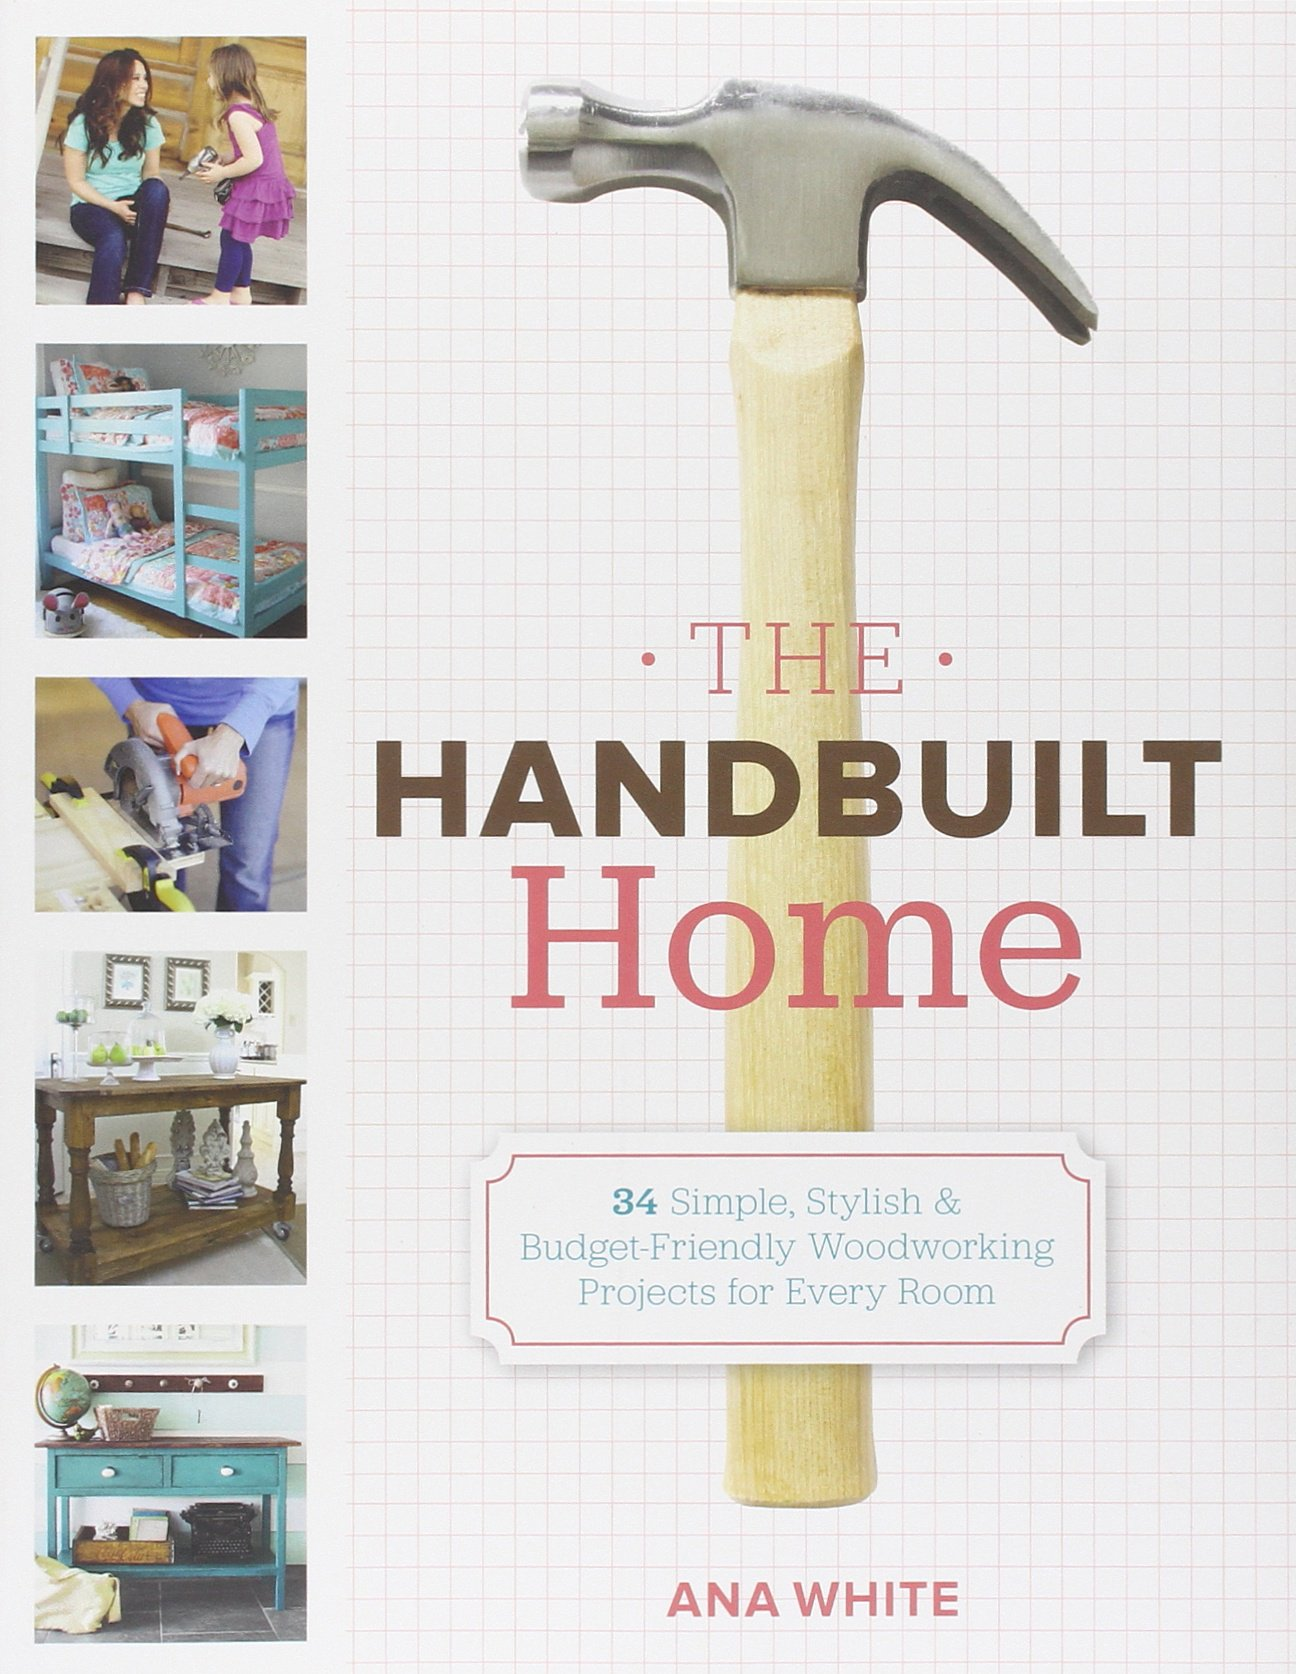 the handbuilt home 34 simple stylish and budget friendly the handbuilt home 34 simple stylish and budget friendly woodworking projects for every room ana white 9780307587329 amazon com books